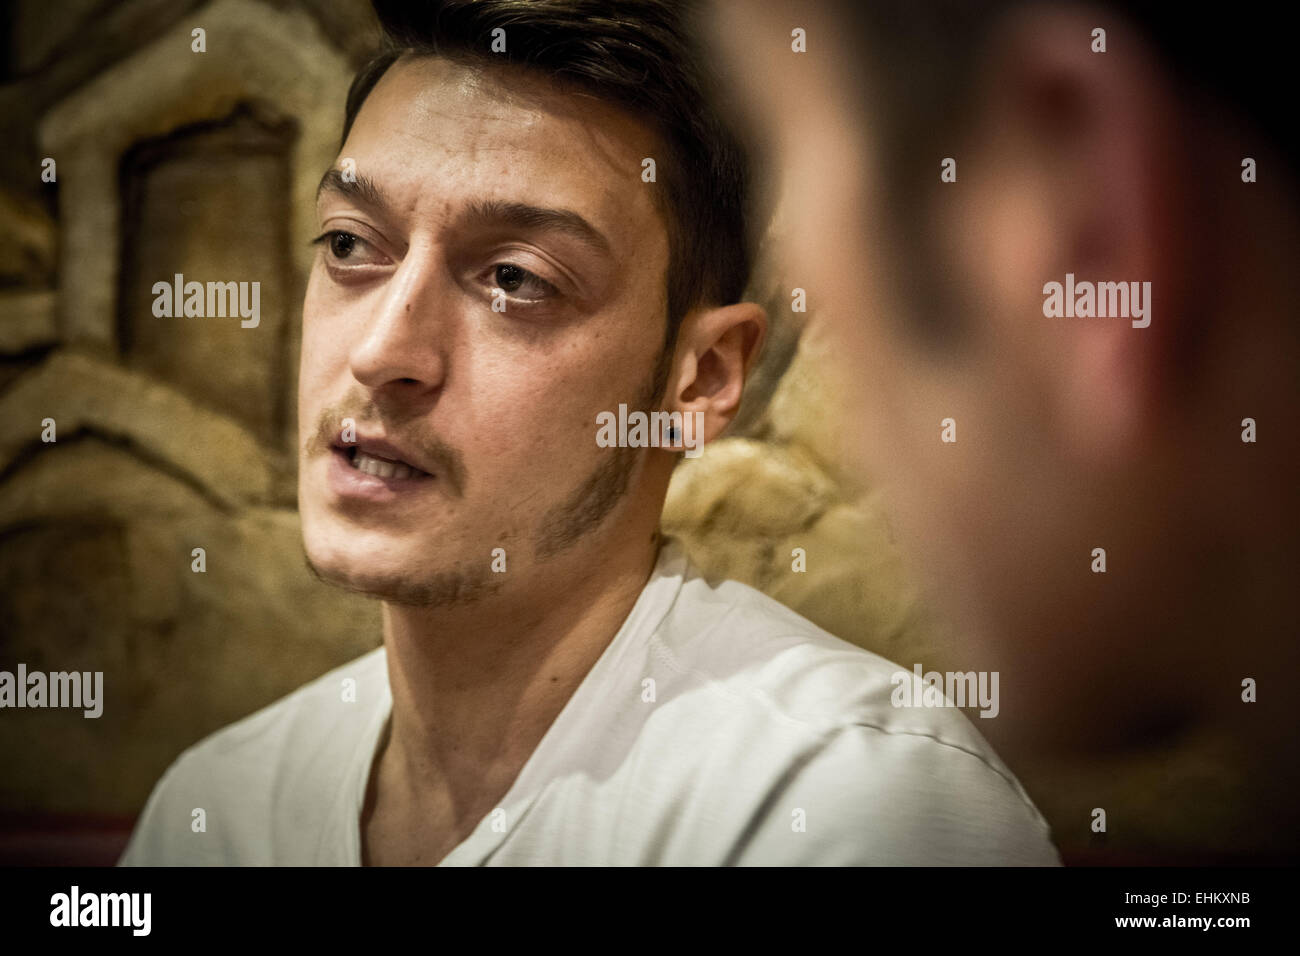 Mesut Özil, German footballer and Arsenal player gives an interview Stock Photo